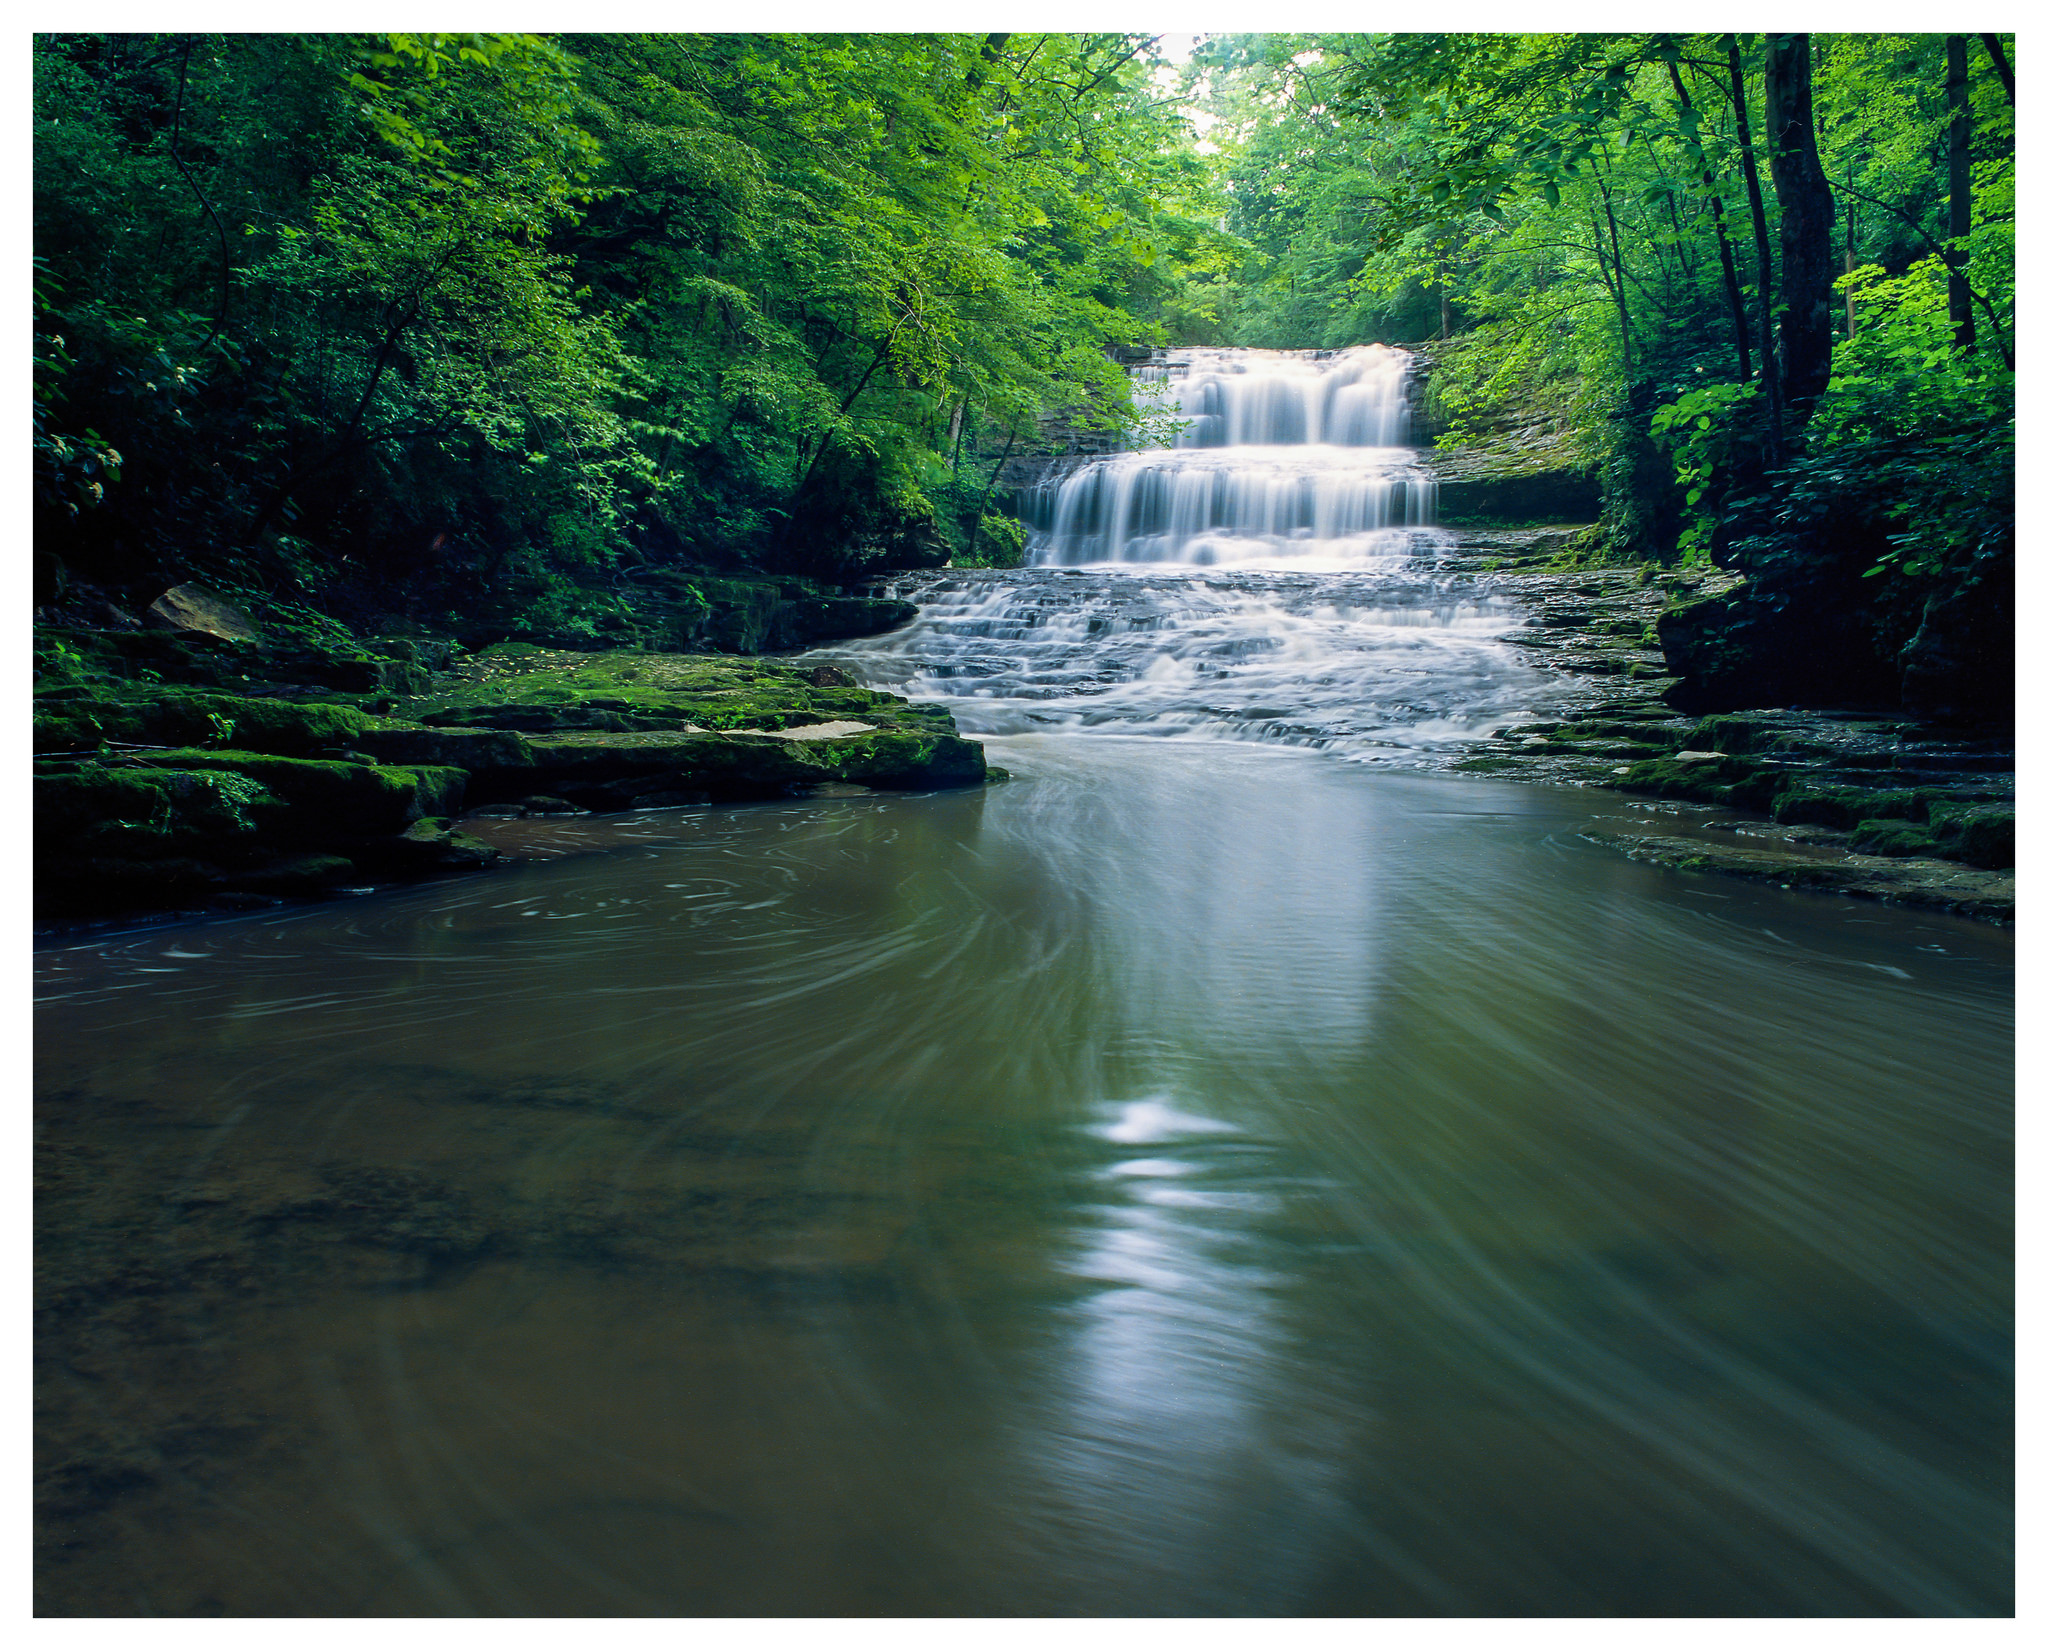 Fallsville Falls – Mamiya RB67 ProS w/50mm lens, polarizer, and 4-stop ND filter @ f/16, 90 seconds